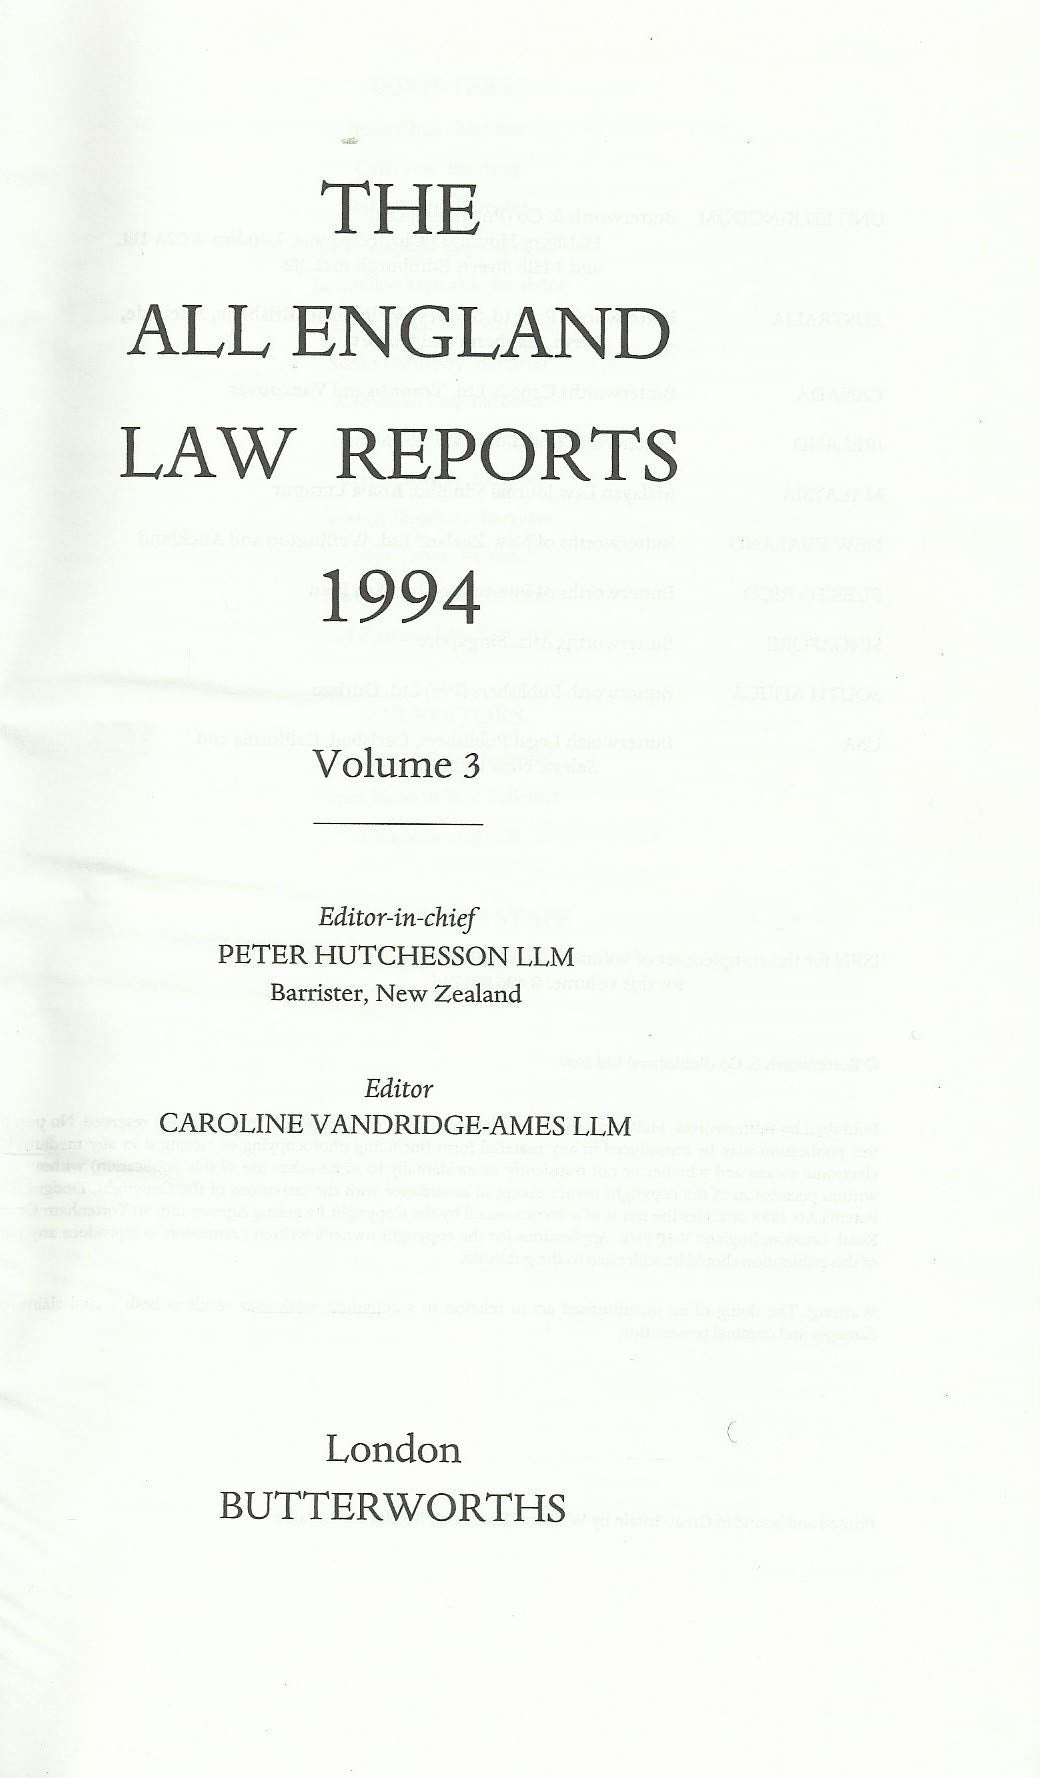 The All England Law Reports 1994, Volume 3